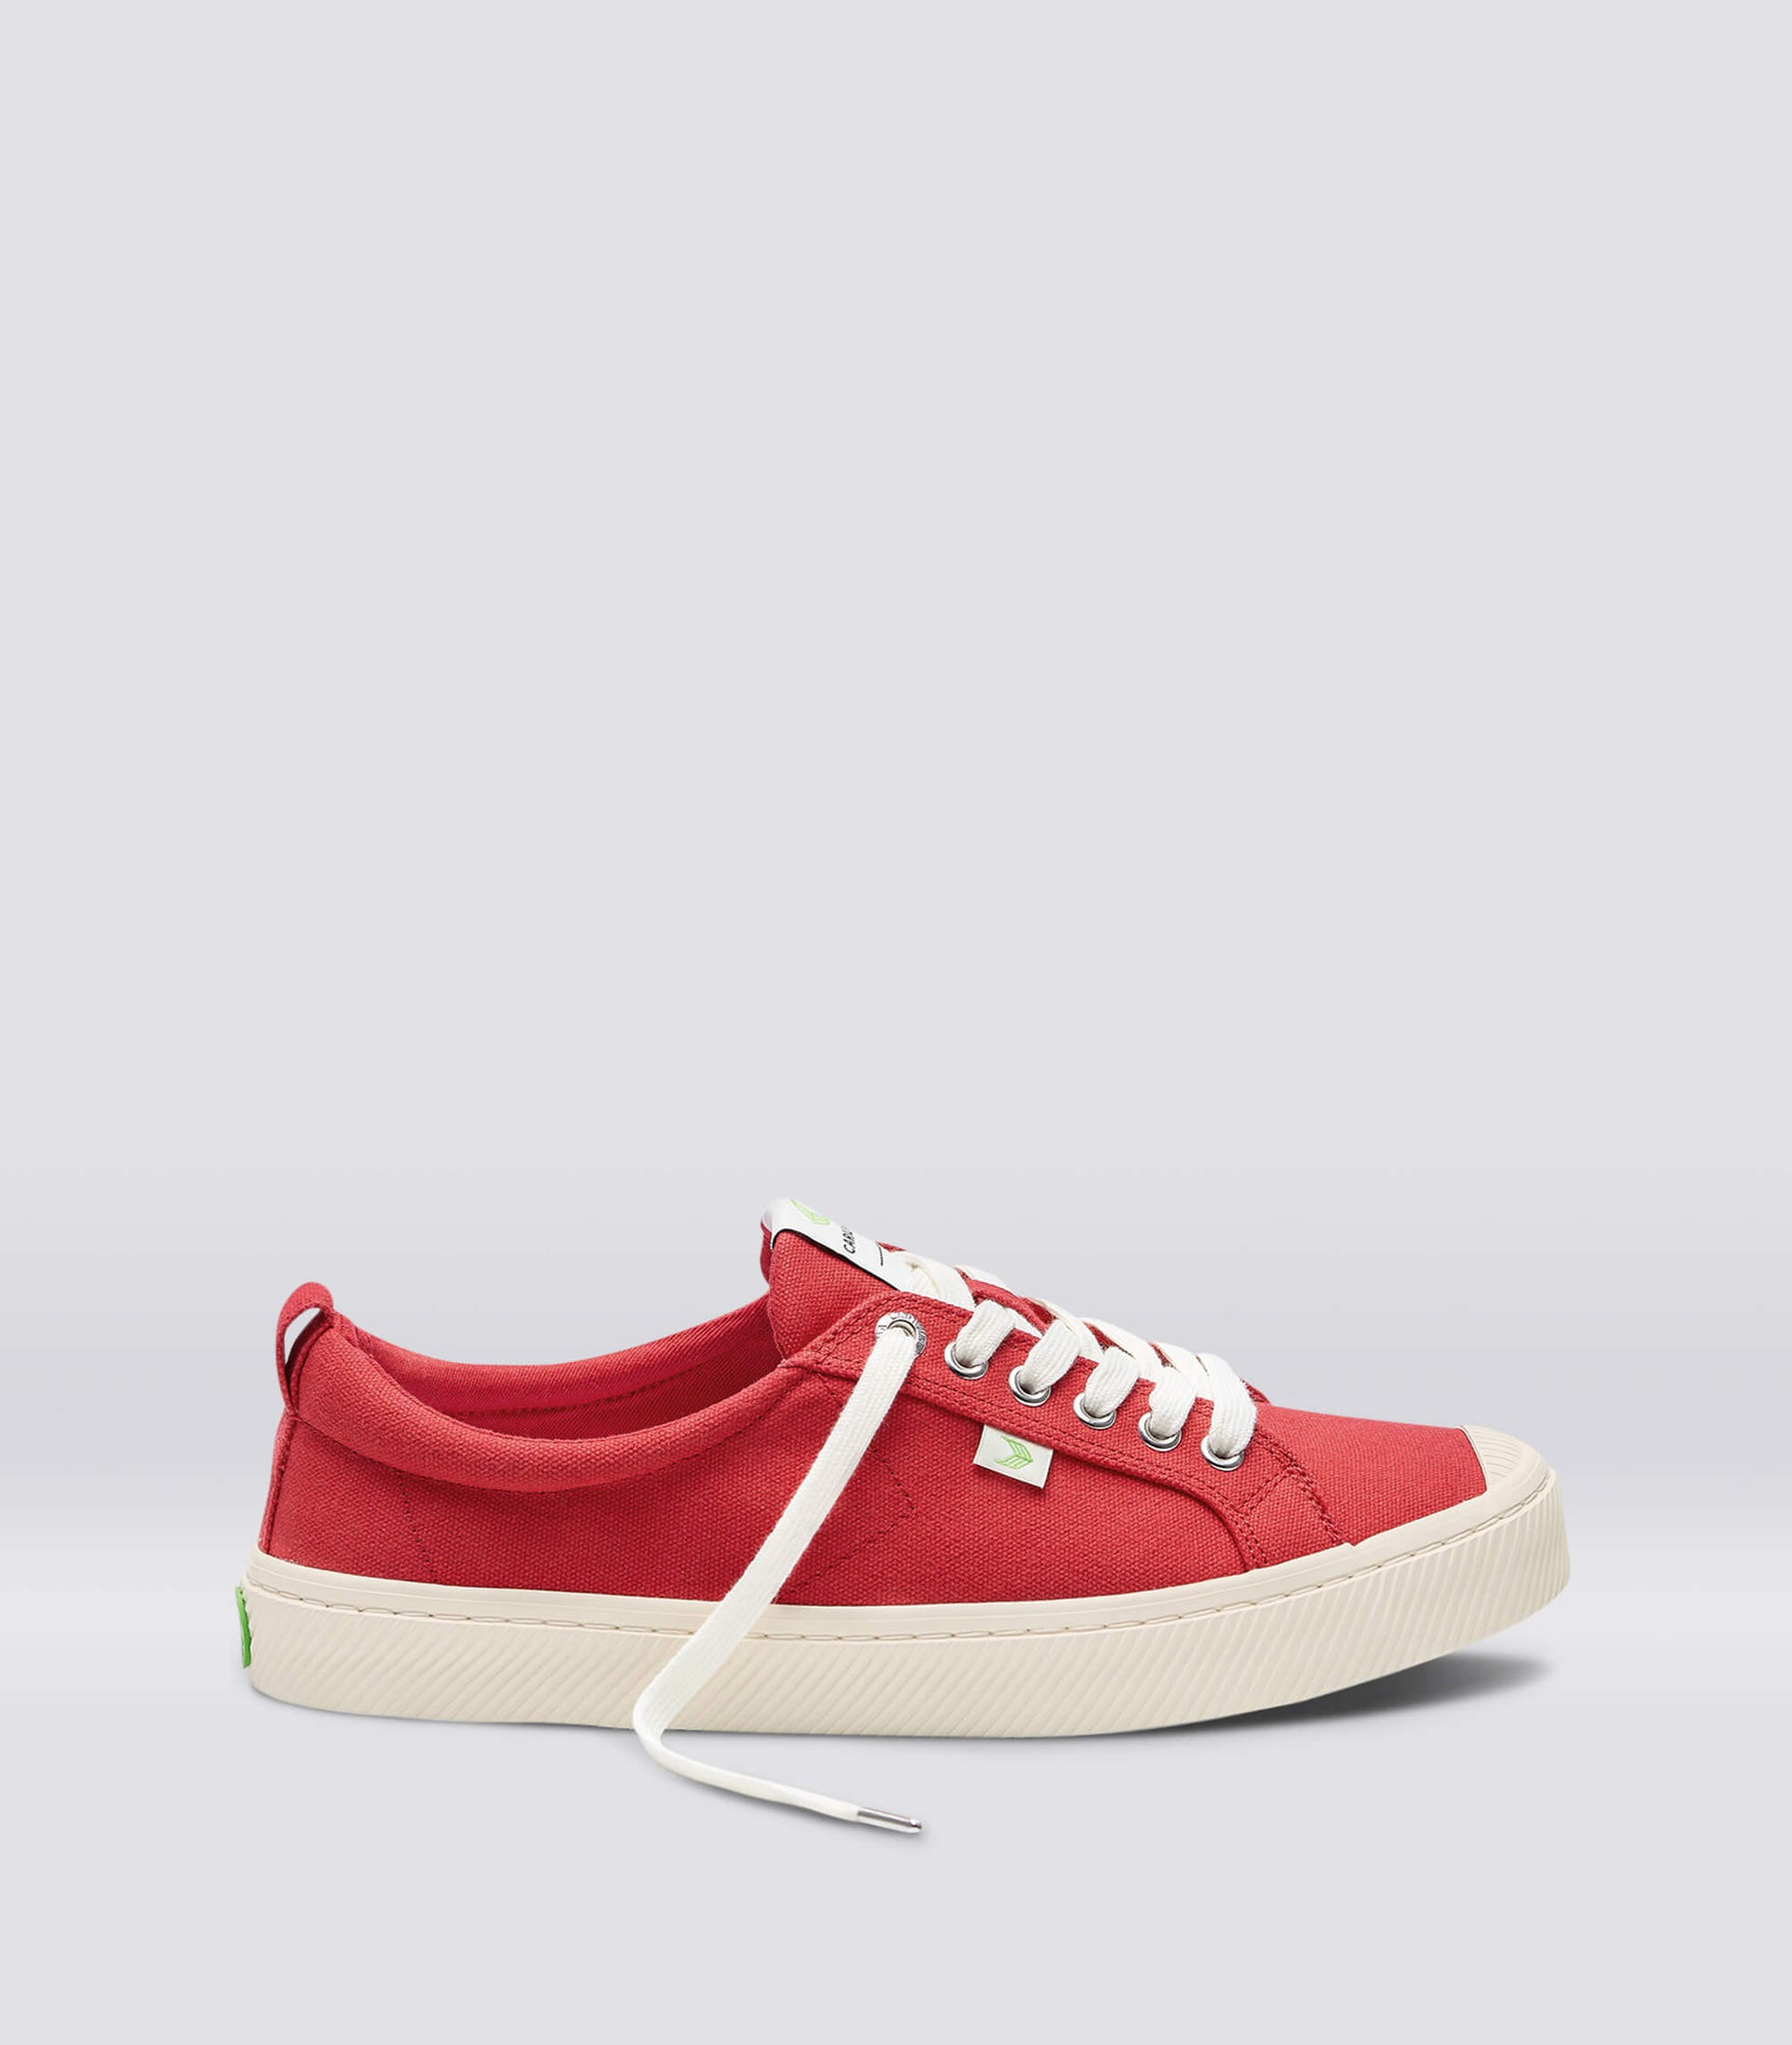 OCA Low Red Canvas Sneaker Men